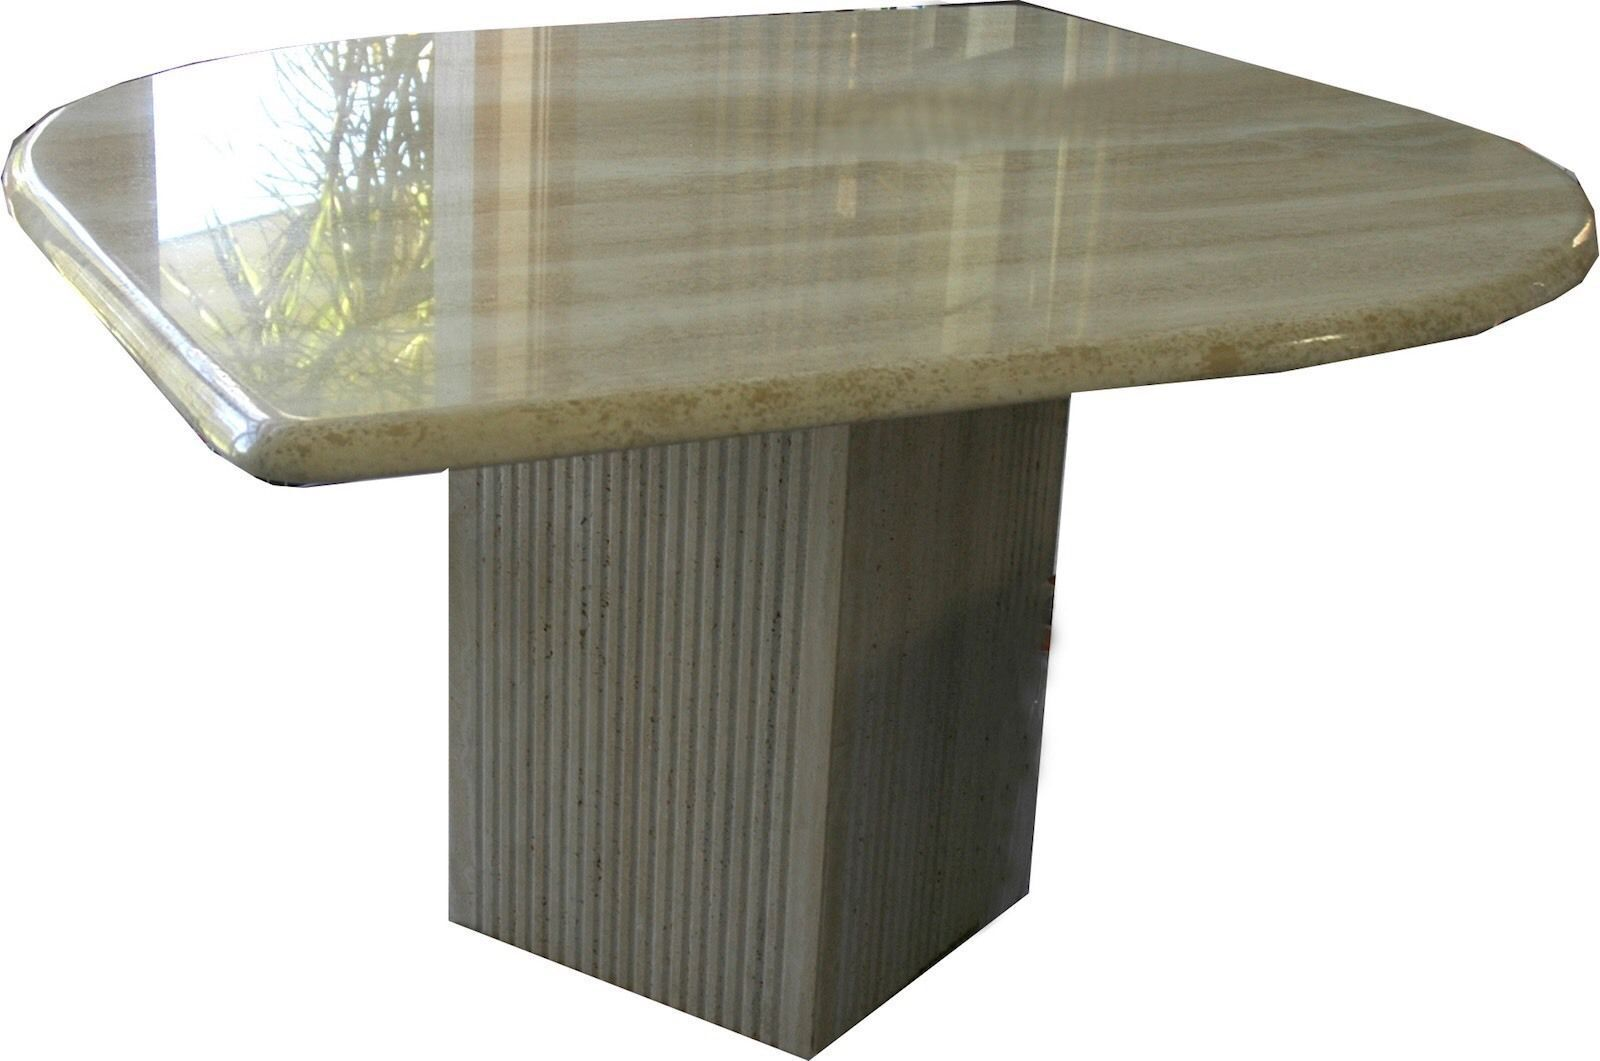 Marble Dining Tables For Sale Shop With Afterpay Ebay